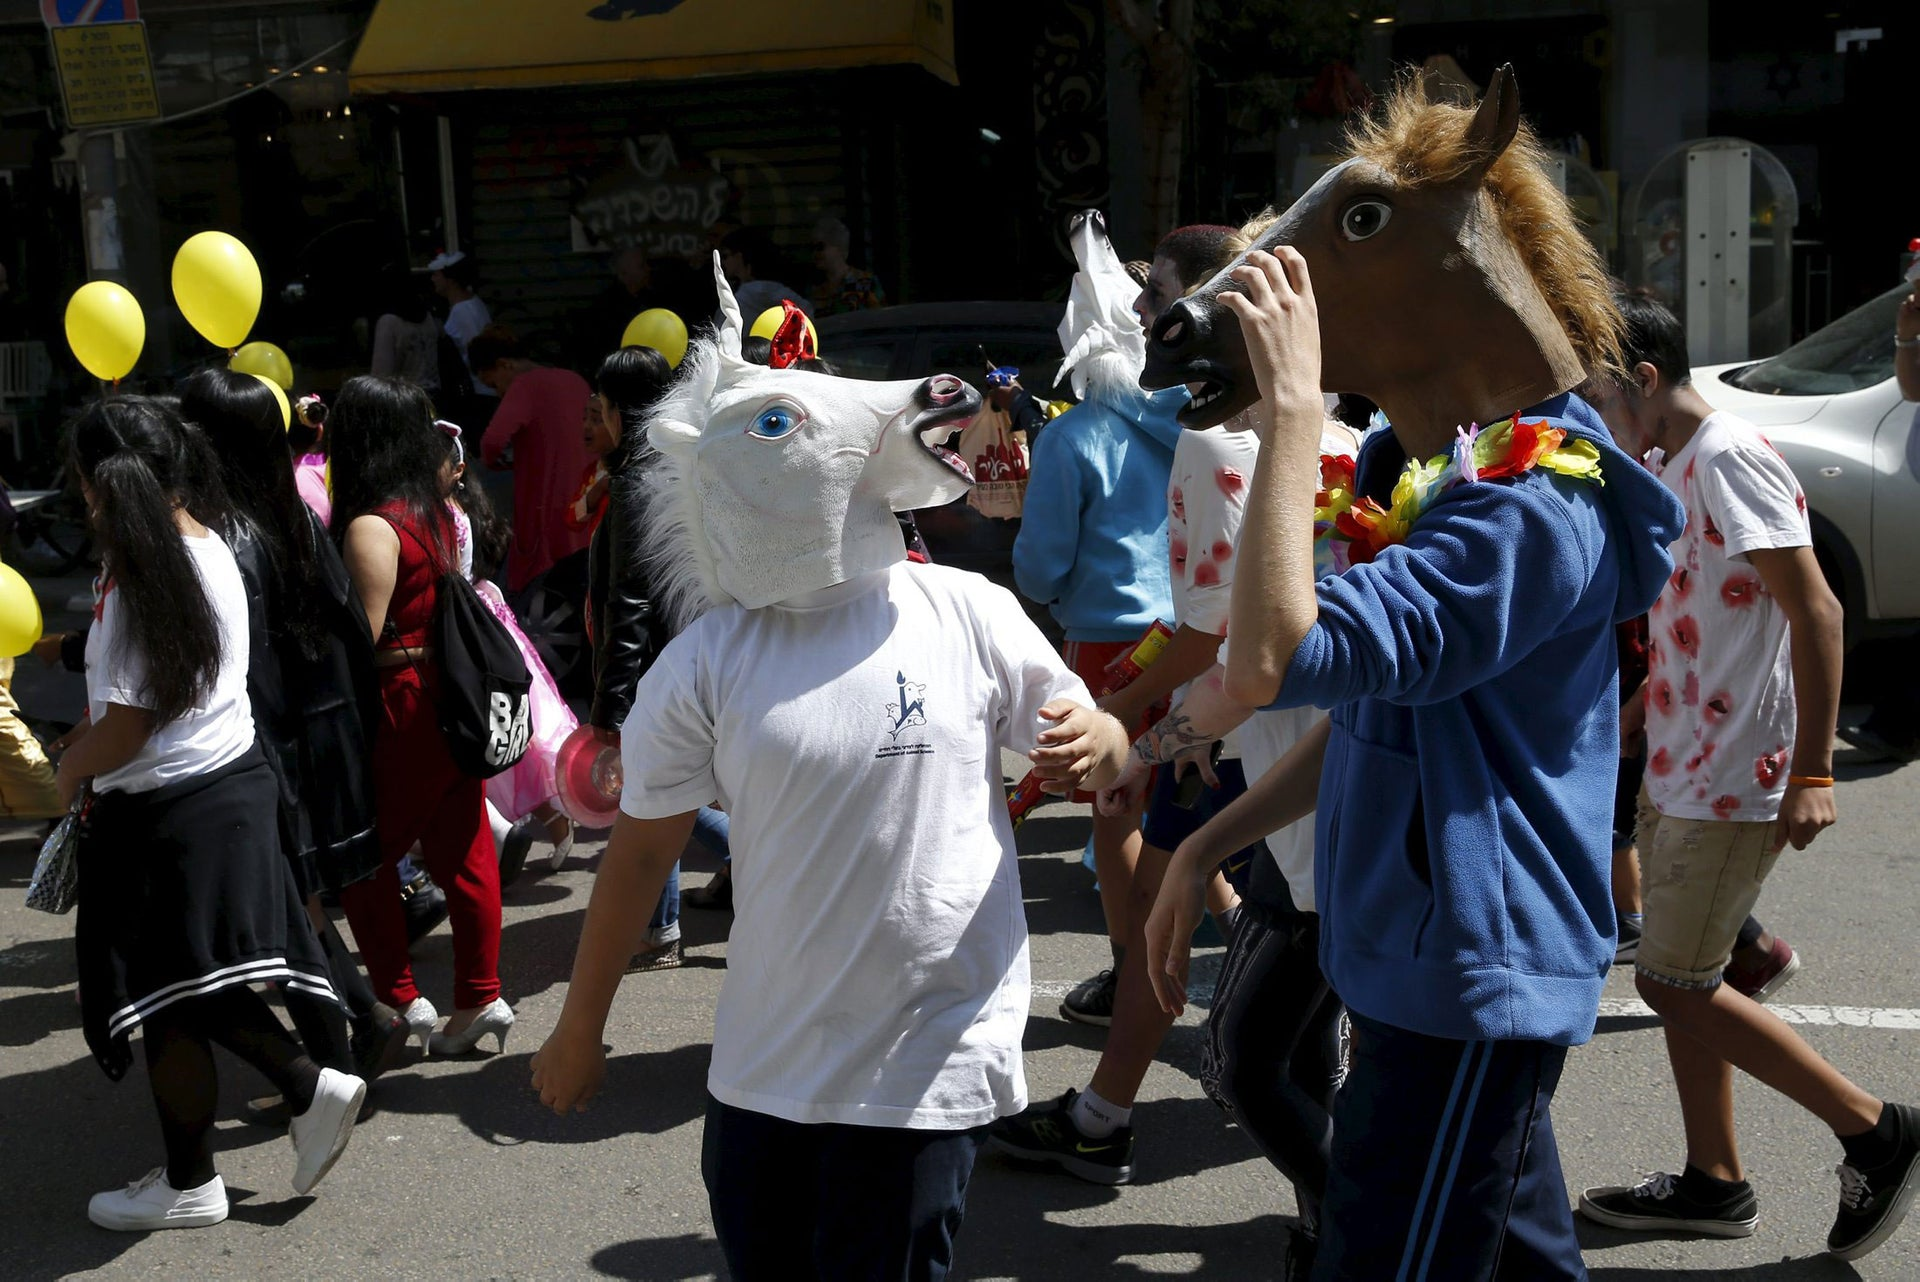 Children wear costumes as they take part in a parade marking the upcoming Jewish holiday of Purim outside the Bialik Rogozin school in Tel Aviv, Israel March 22, 2016.